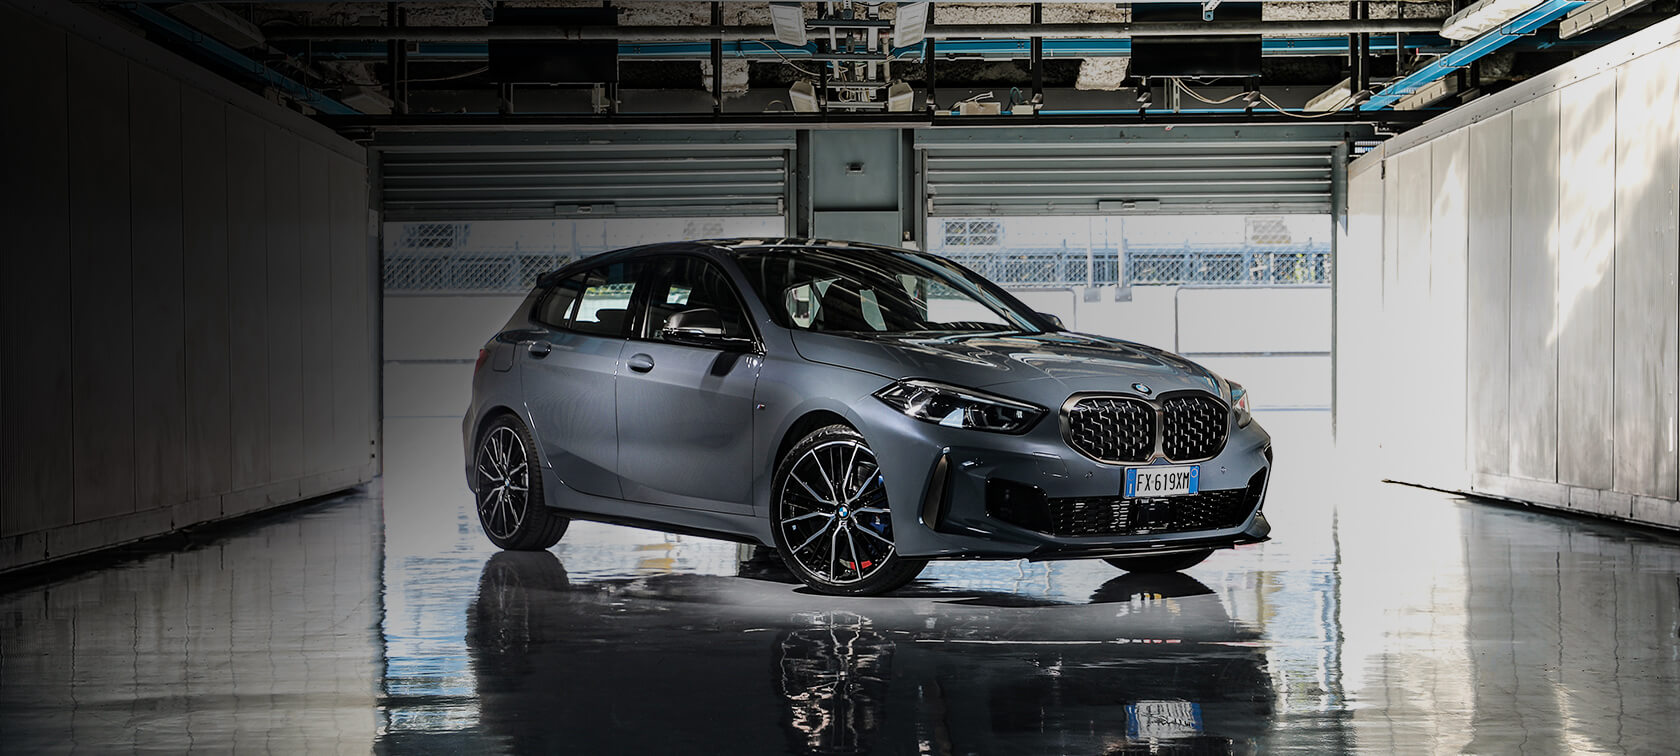 THE 1 - NUOVA BMW SERIE 1